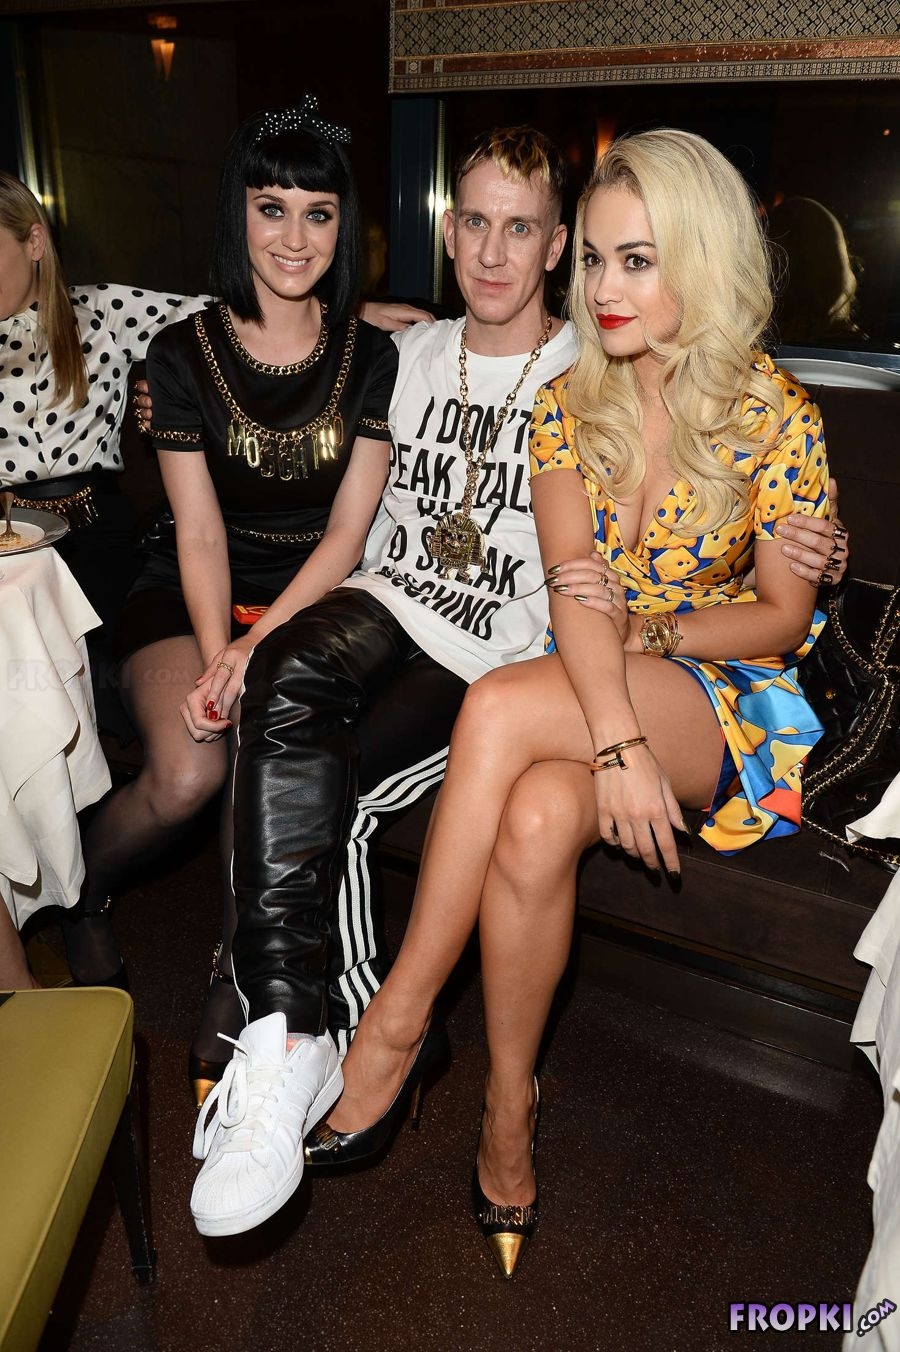 Katy Perry and Rita Ora at Fashion Week in Milan